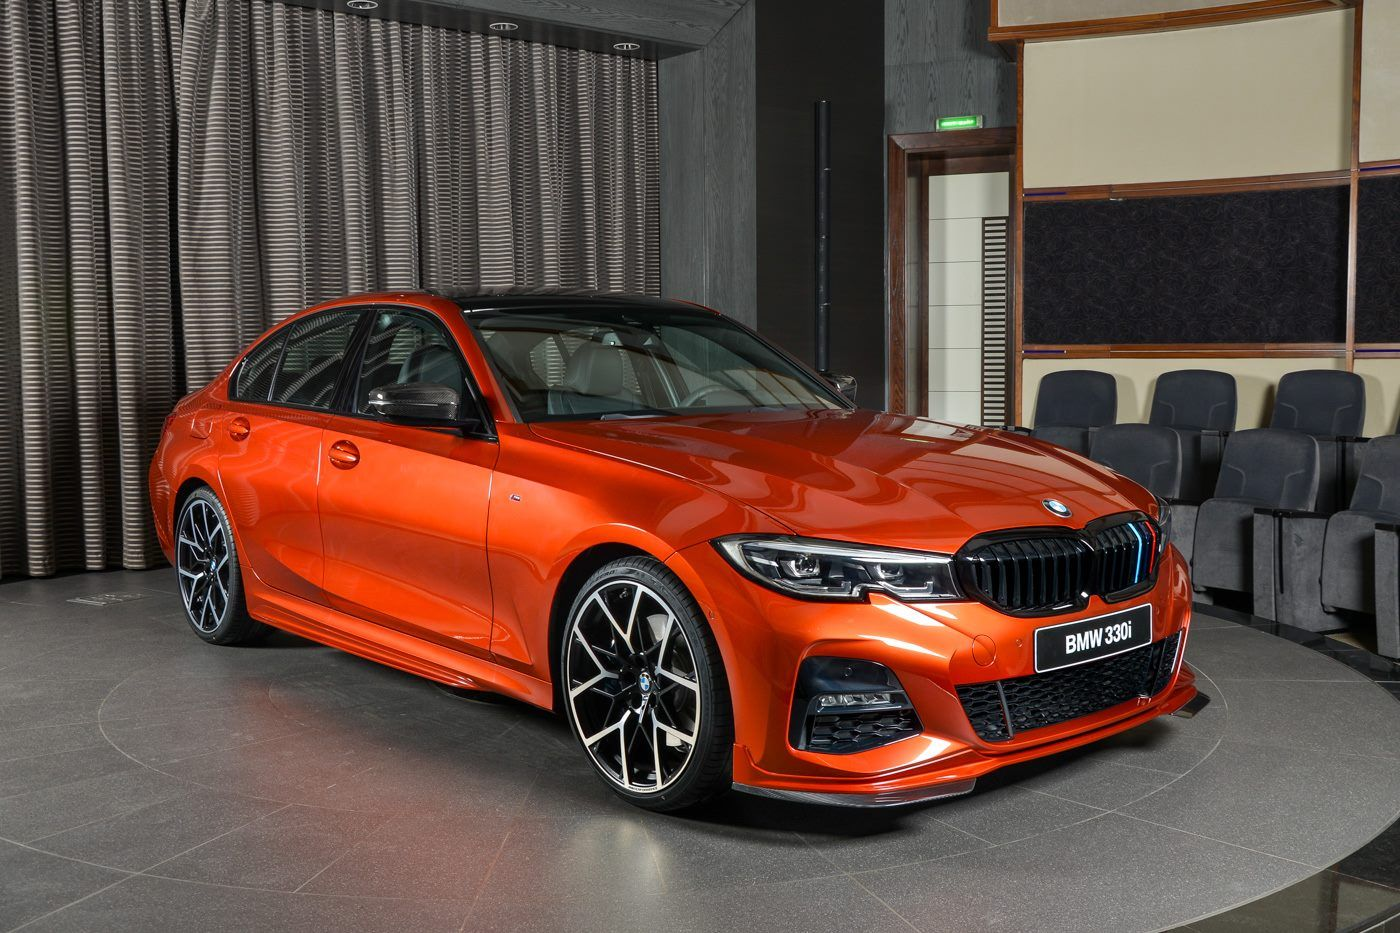 New Bmw 330i M Sport Rocks Sunset Orange Exterior With M Performance Upgrades Carscoops Bmw New Bmw Bmw 3 Series